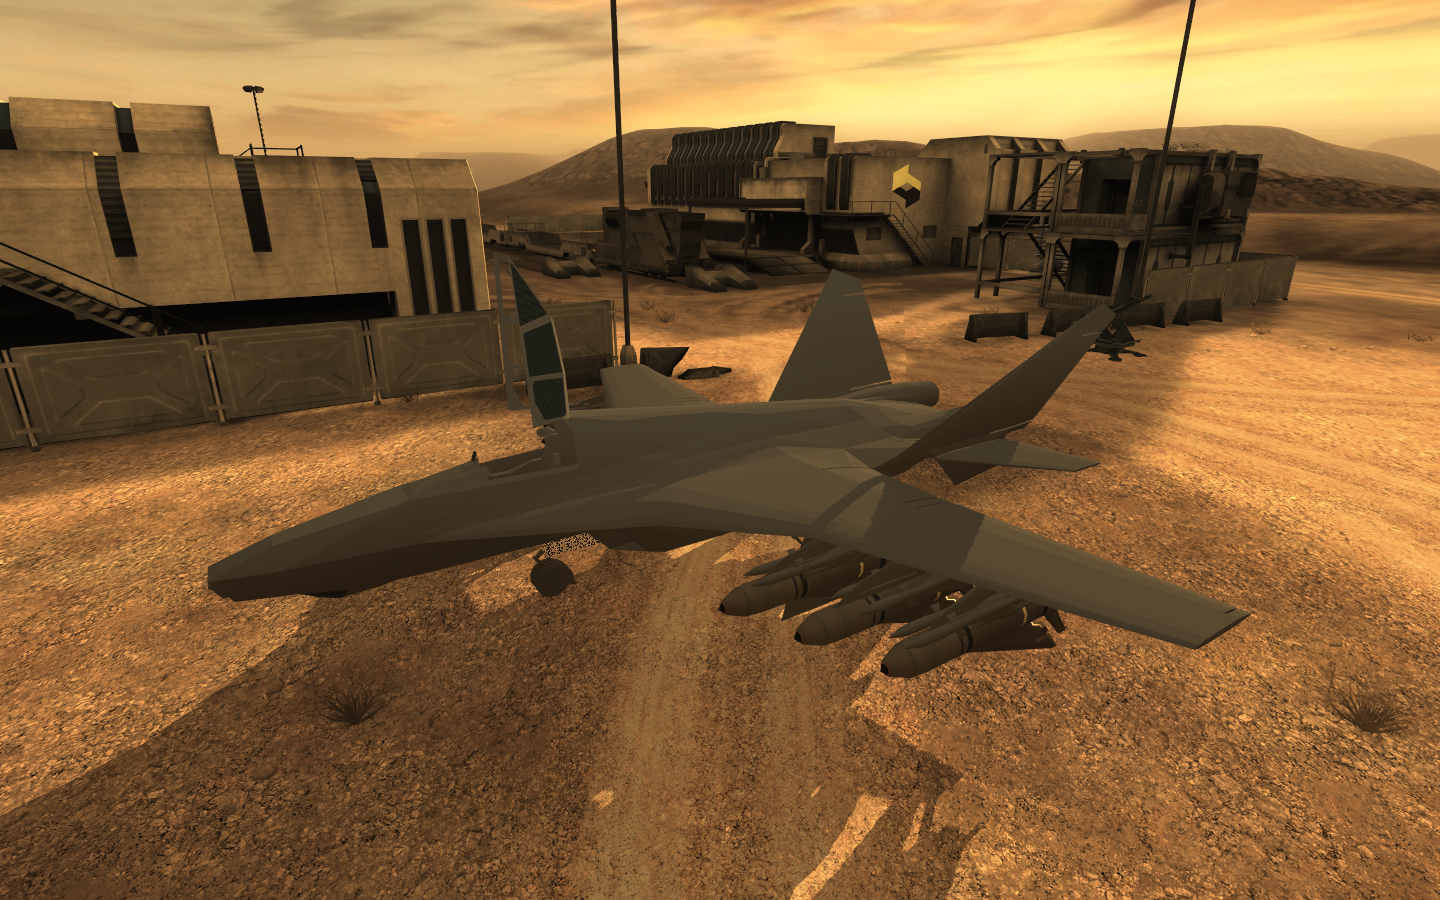 PAC Jet - Ingame - Test image - Northern Excursion mod for